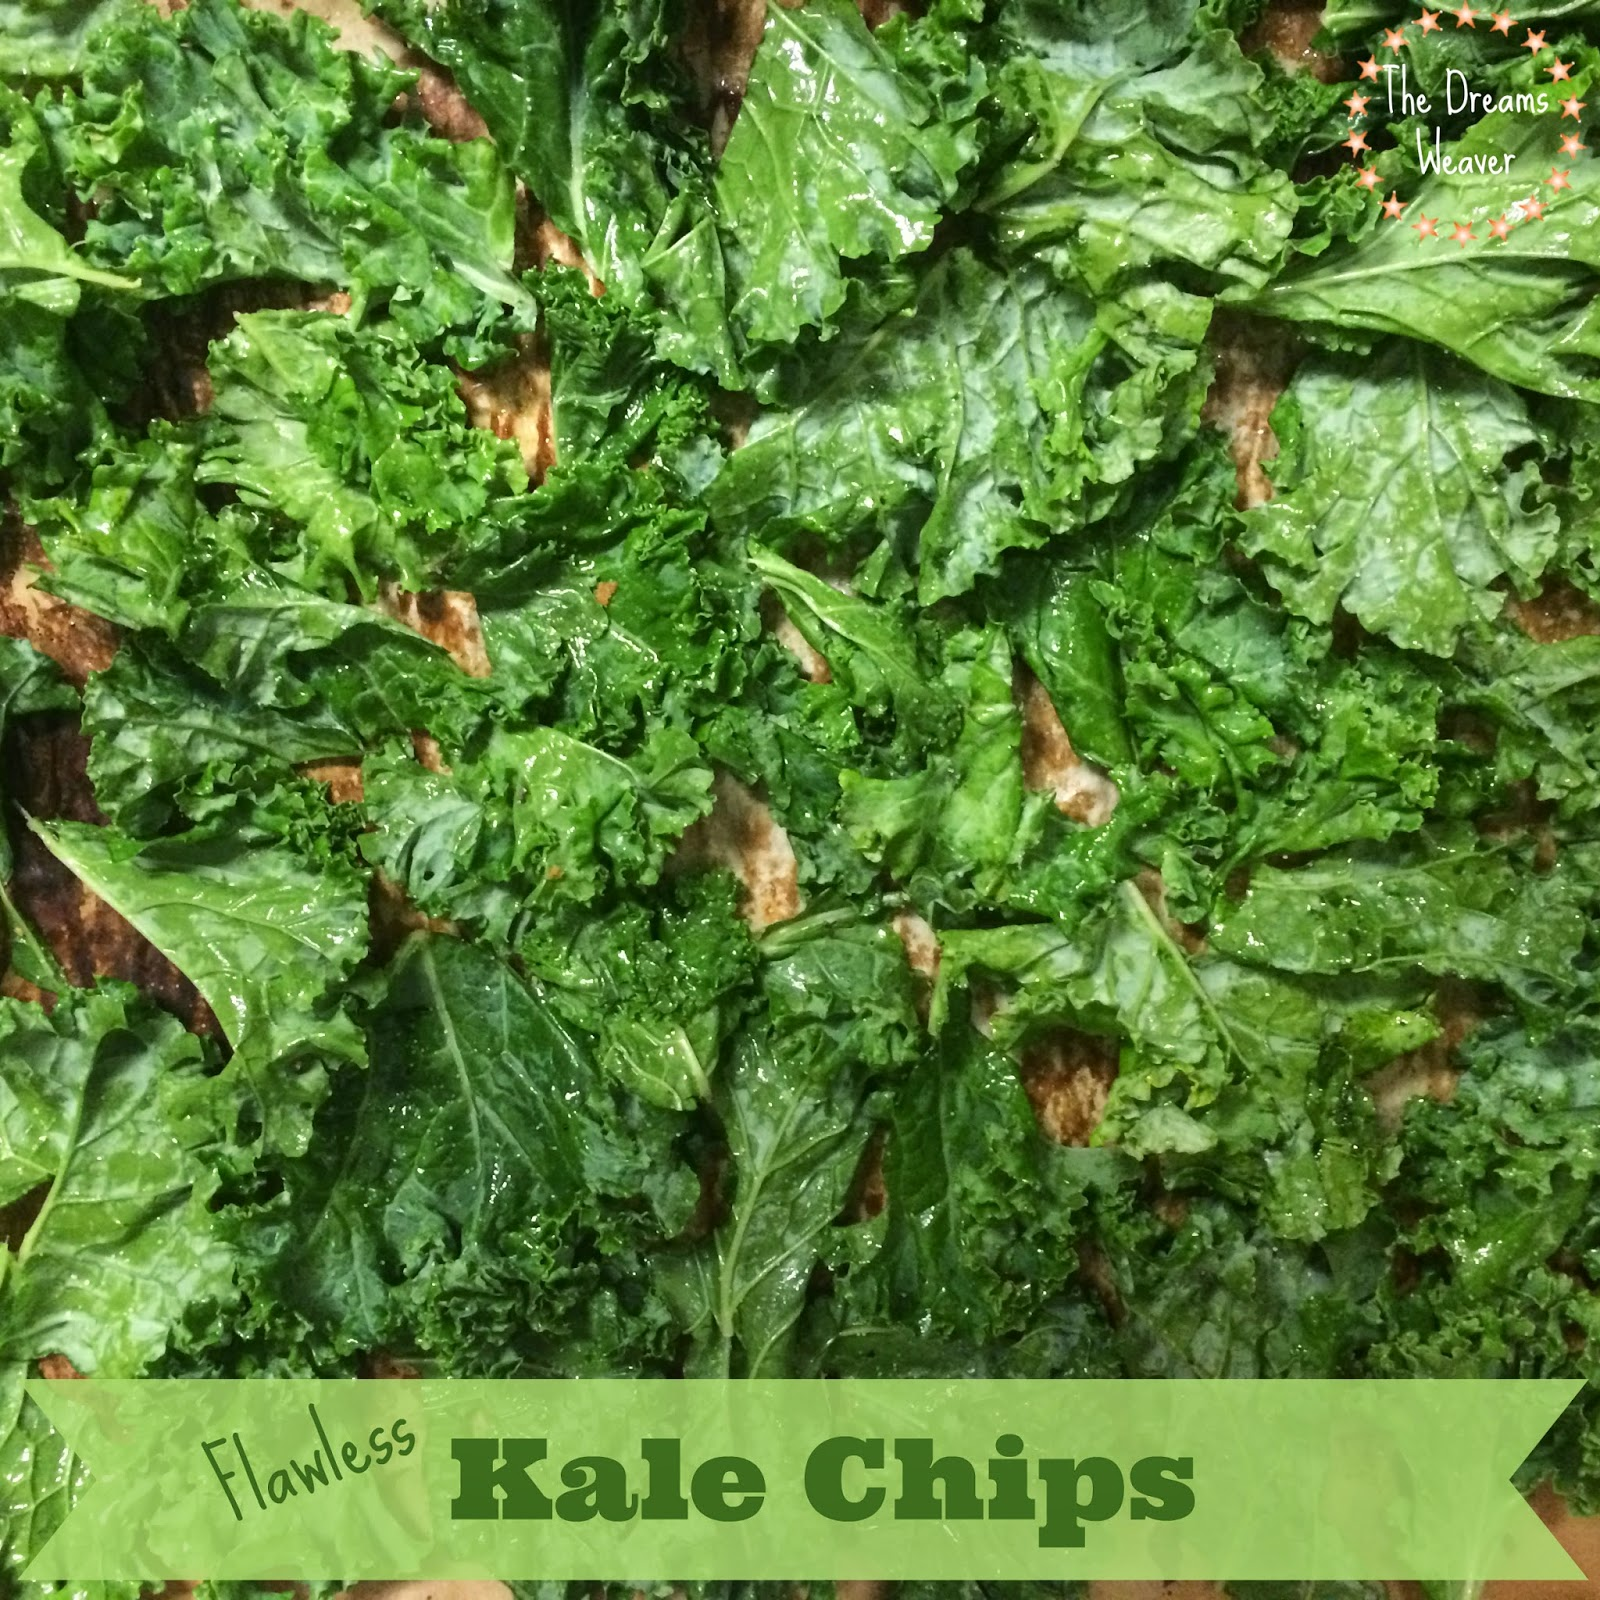 Flawless Kale Chips~ The Dreams Weaver